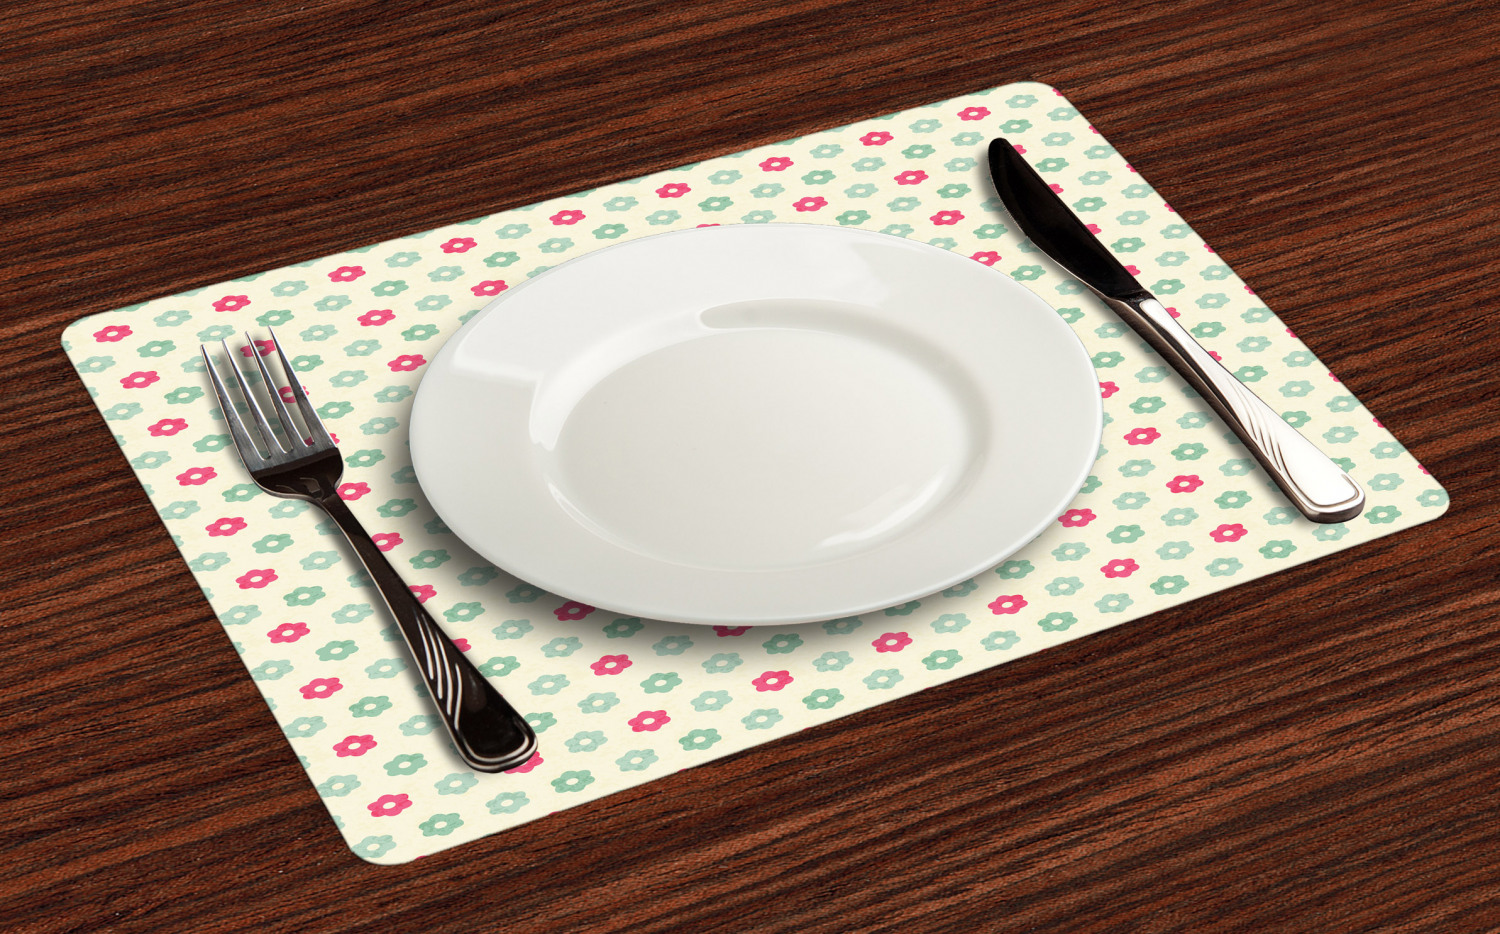 Ambesonne-Fabric-Place-Mats-Set-of-4-Placemats-for-Dining-Room-and-Kitchen-Table thumbnail 81